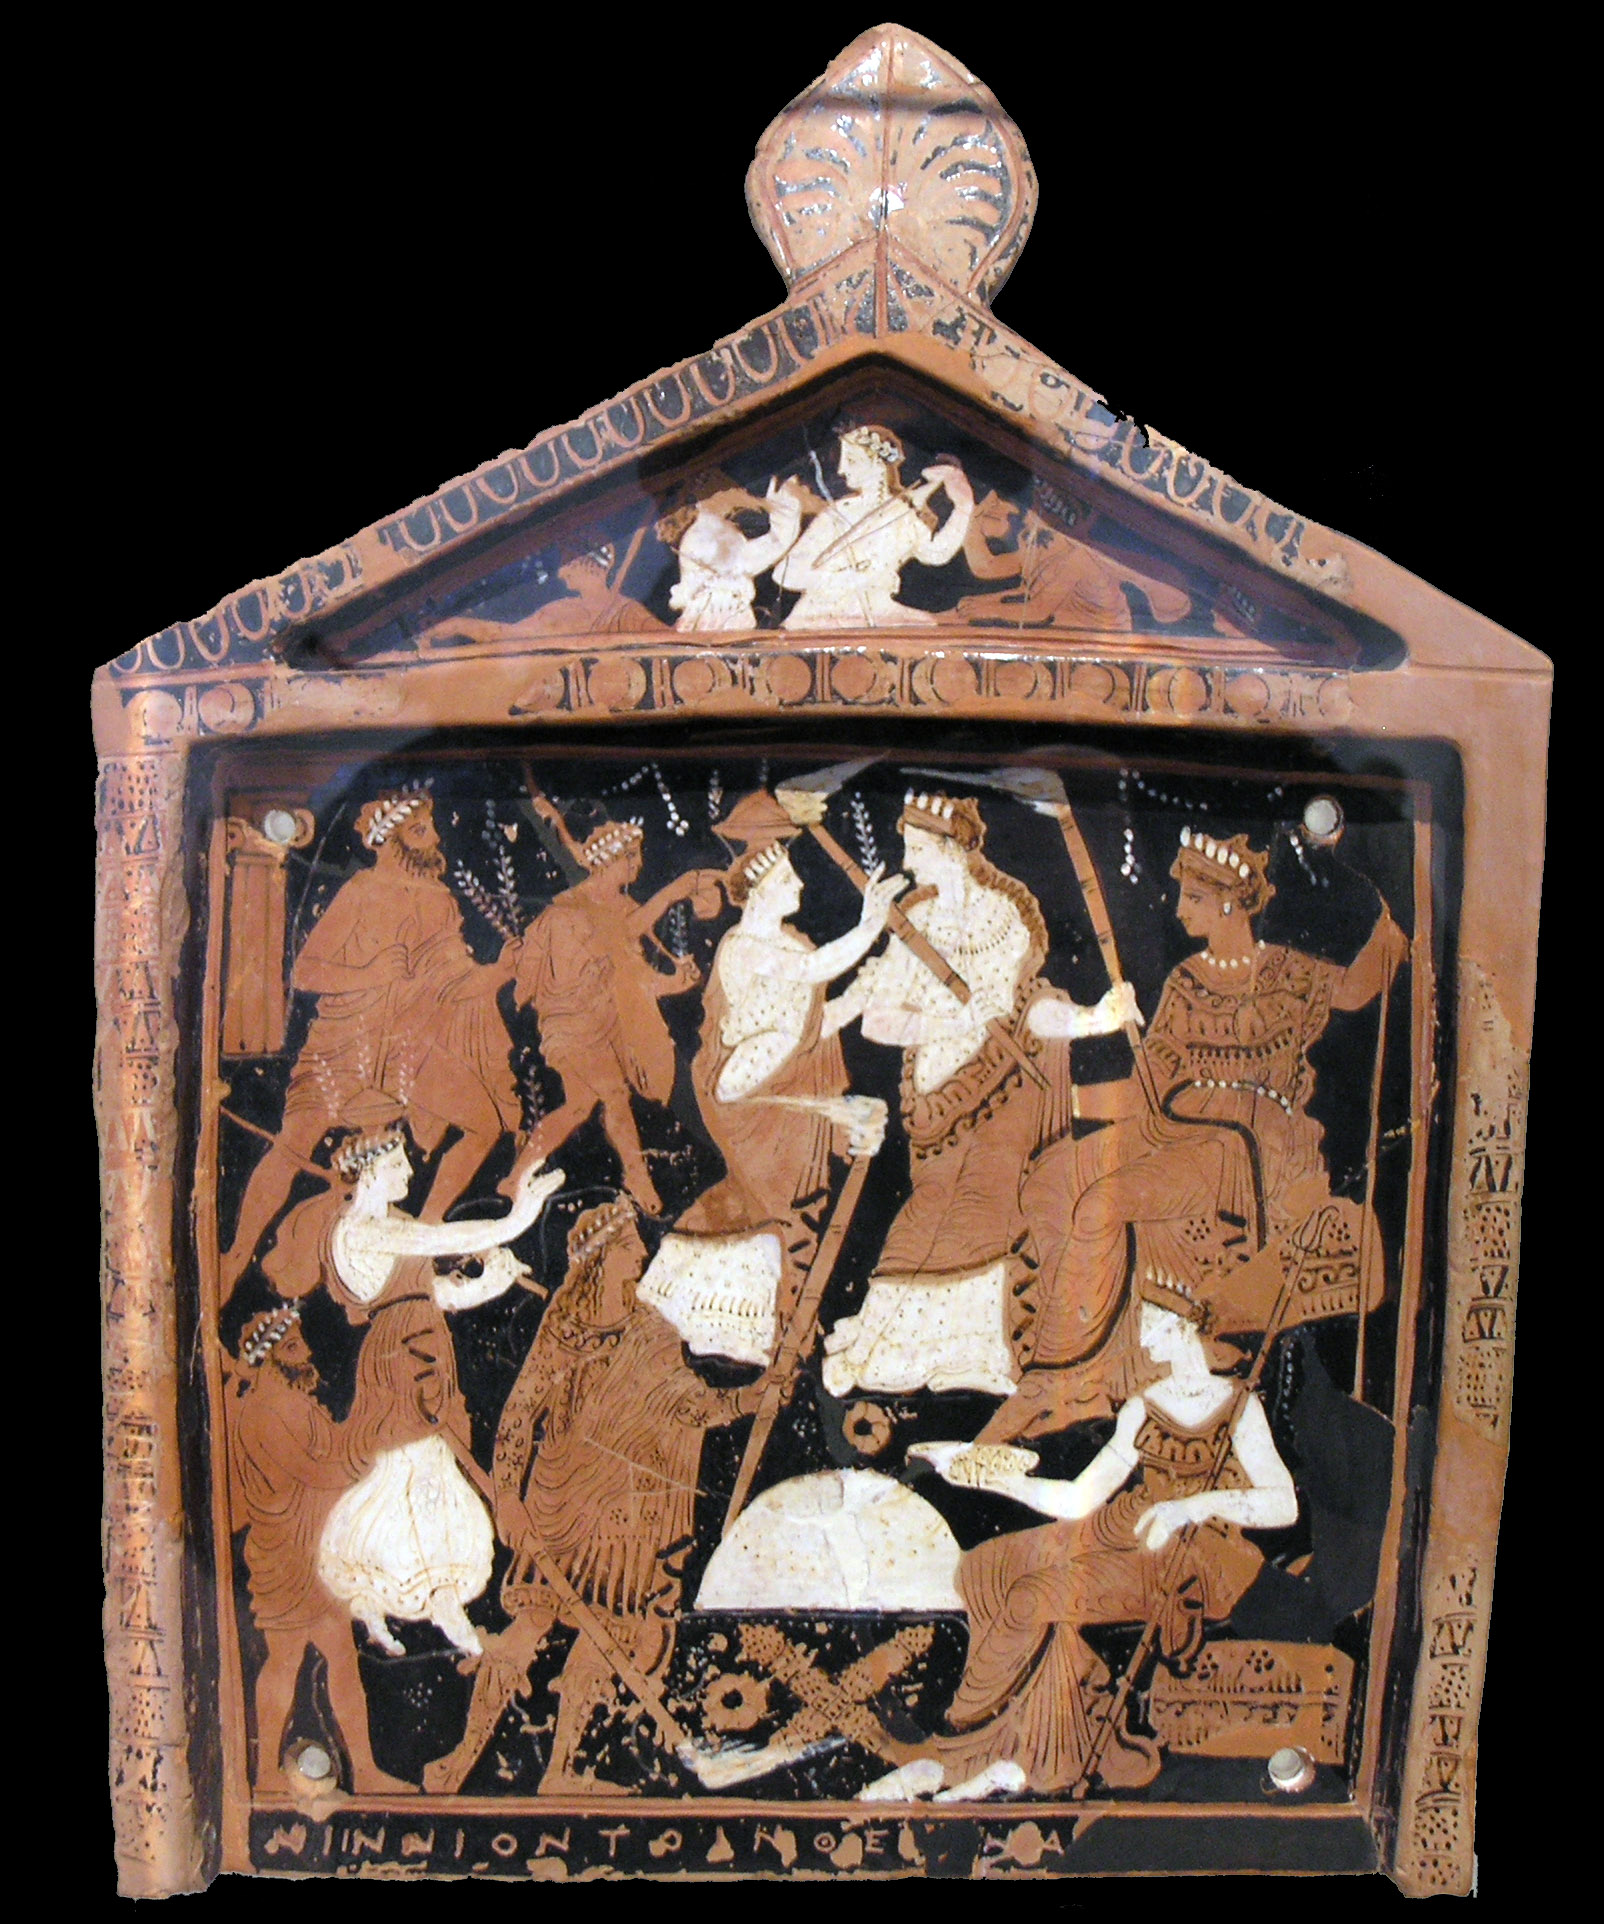 """image: Ninnion Pinax, or """"Votive Plaque of Ninnion"""" dedicated to the keepers of Eleusis. Wikimedia commons (   link   )."""